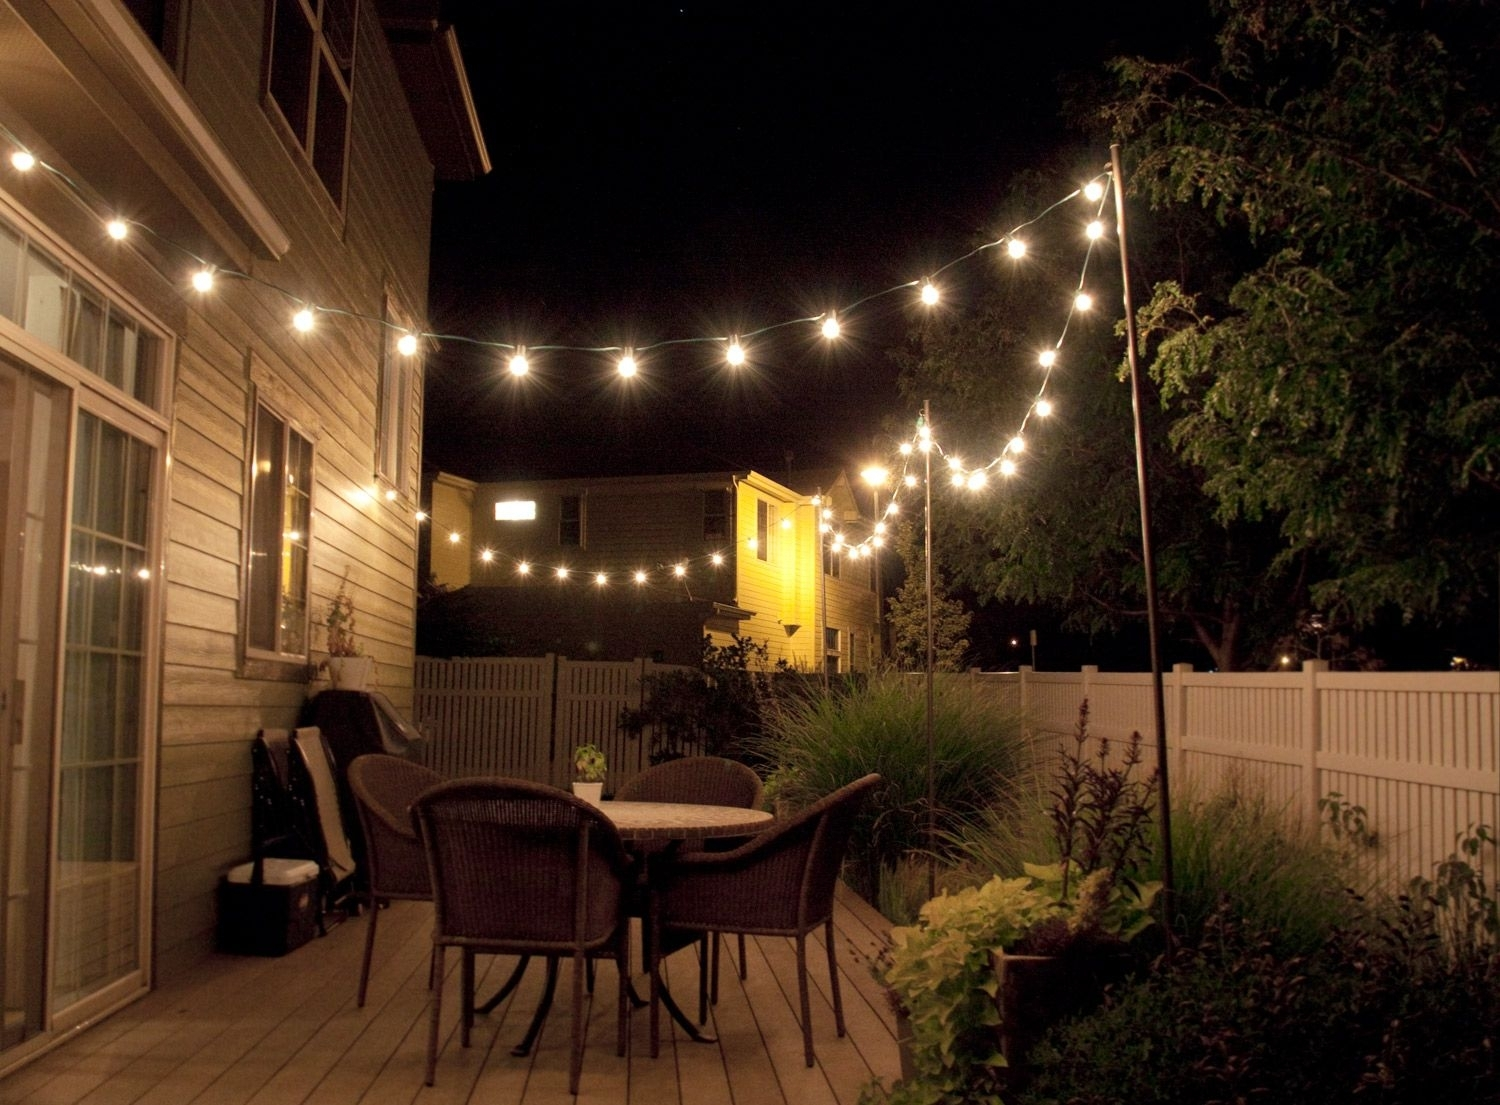 How To Make Inexpensive Poles To Hang String Lights On – Café Style Inside Outdoor Hanging Globe Lights (View 8 of 15)